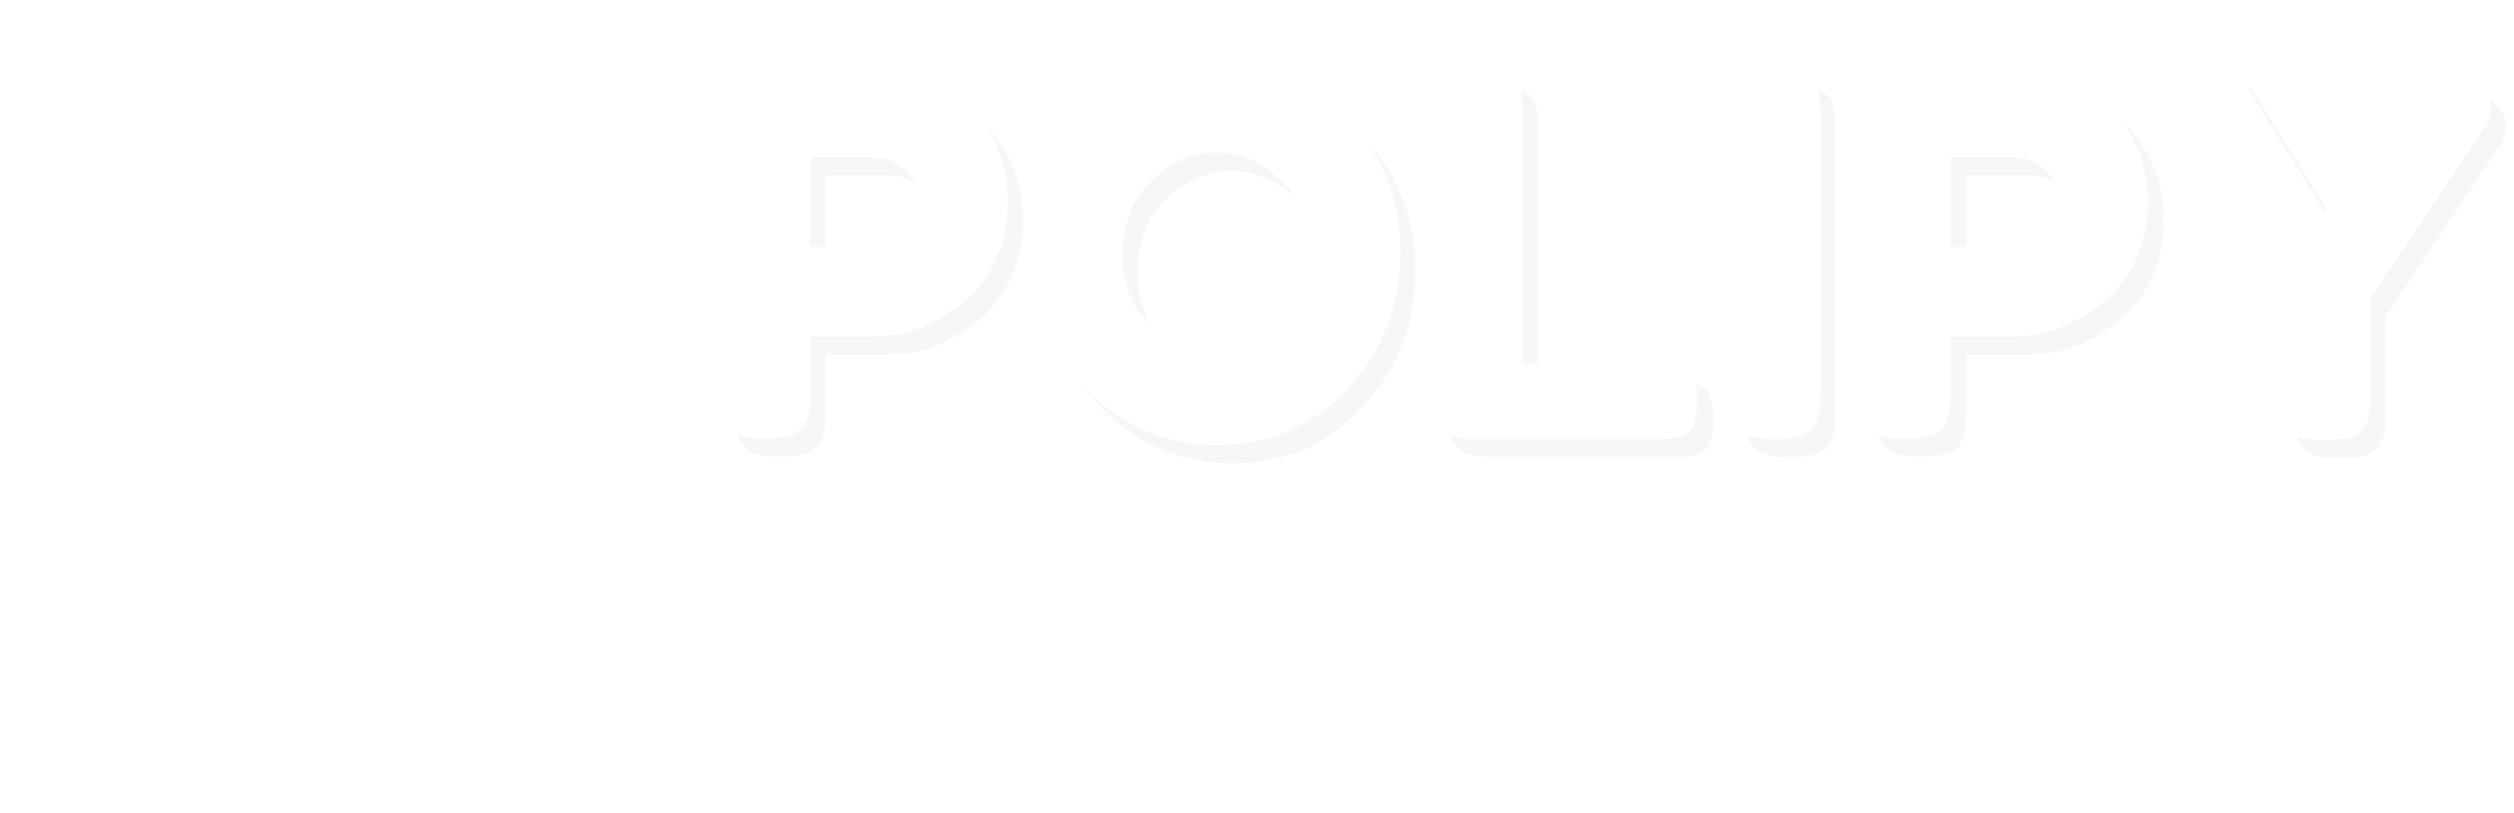 Polipy - Logo bianco